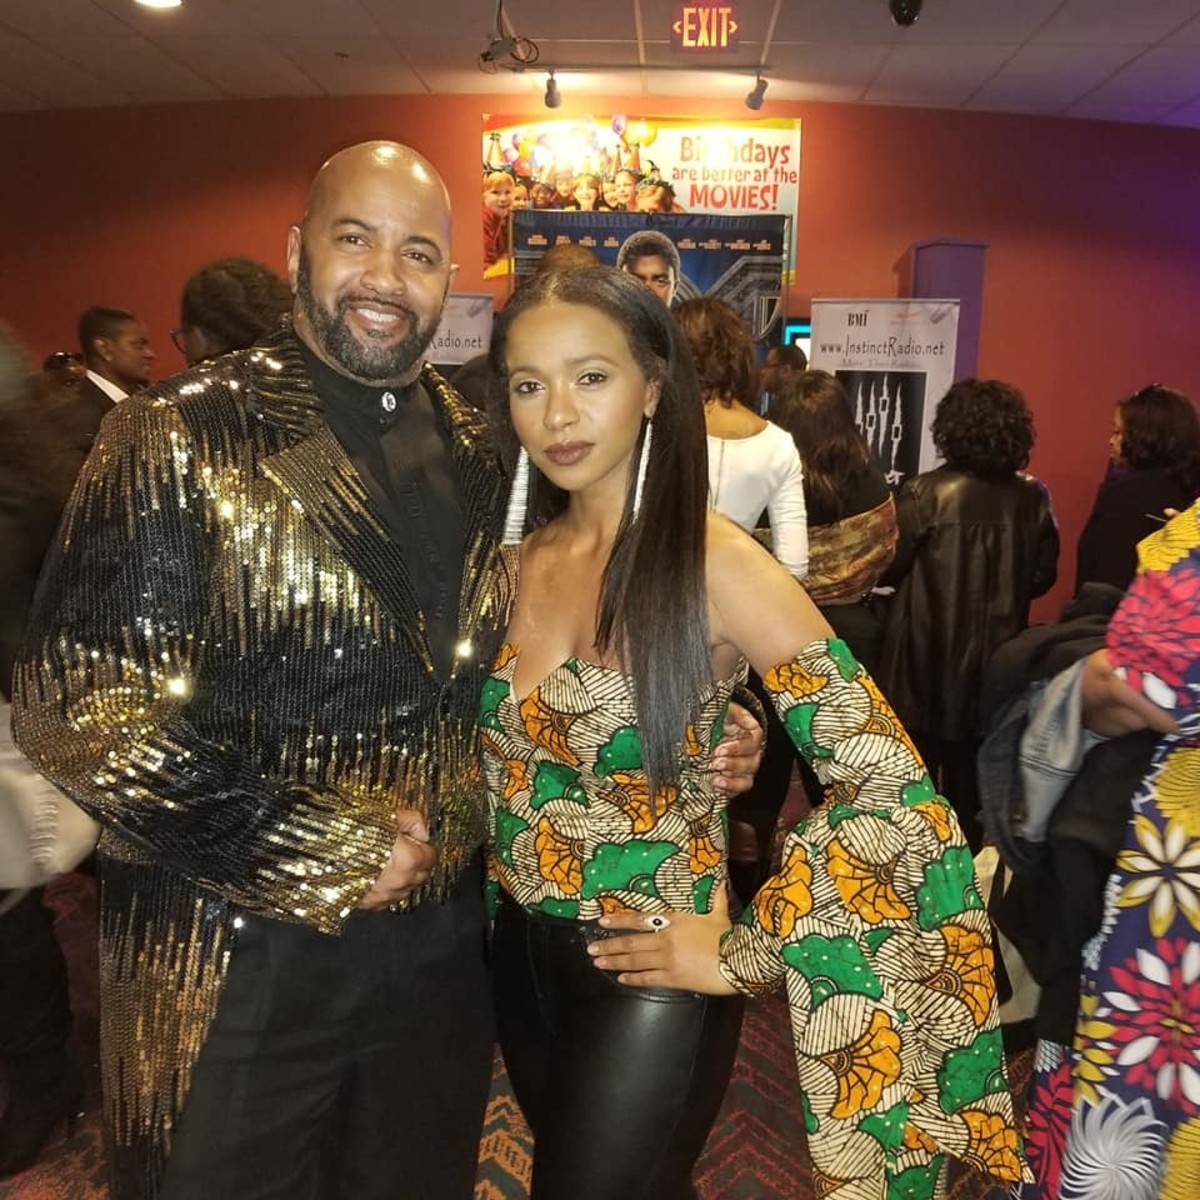 Troy pictured here with co-patriot actress, Laketa Booker, at the 'Black Panther' movie premiere.